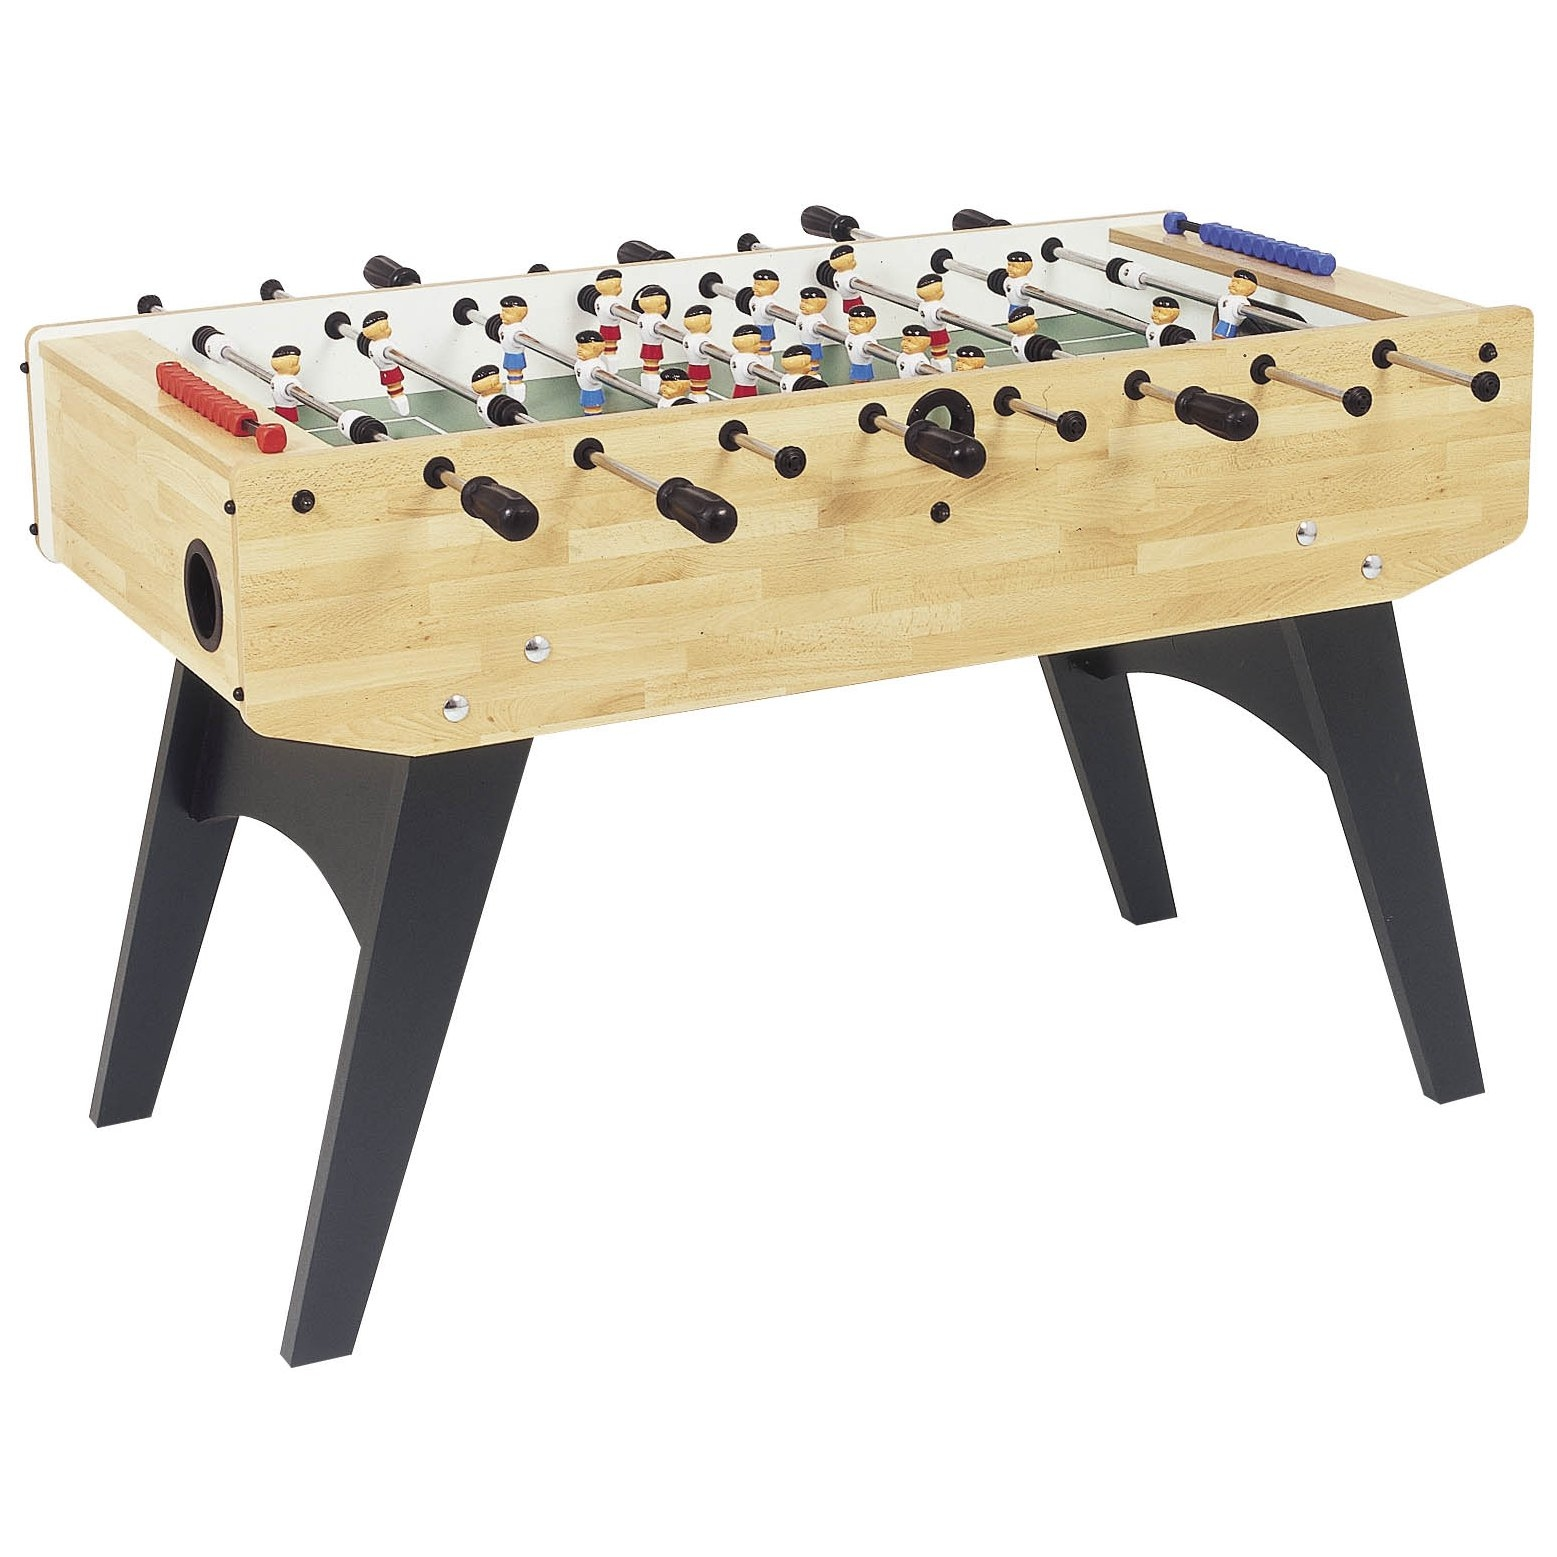 Garlando F20 Table Football Table